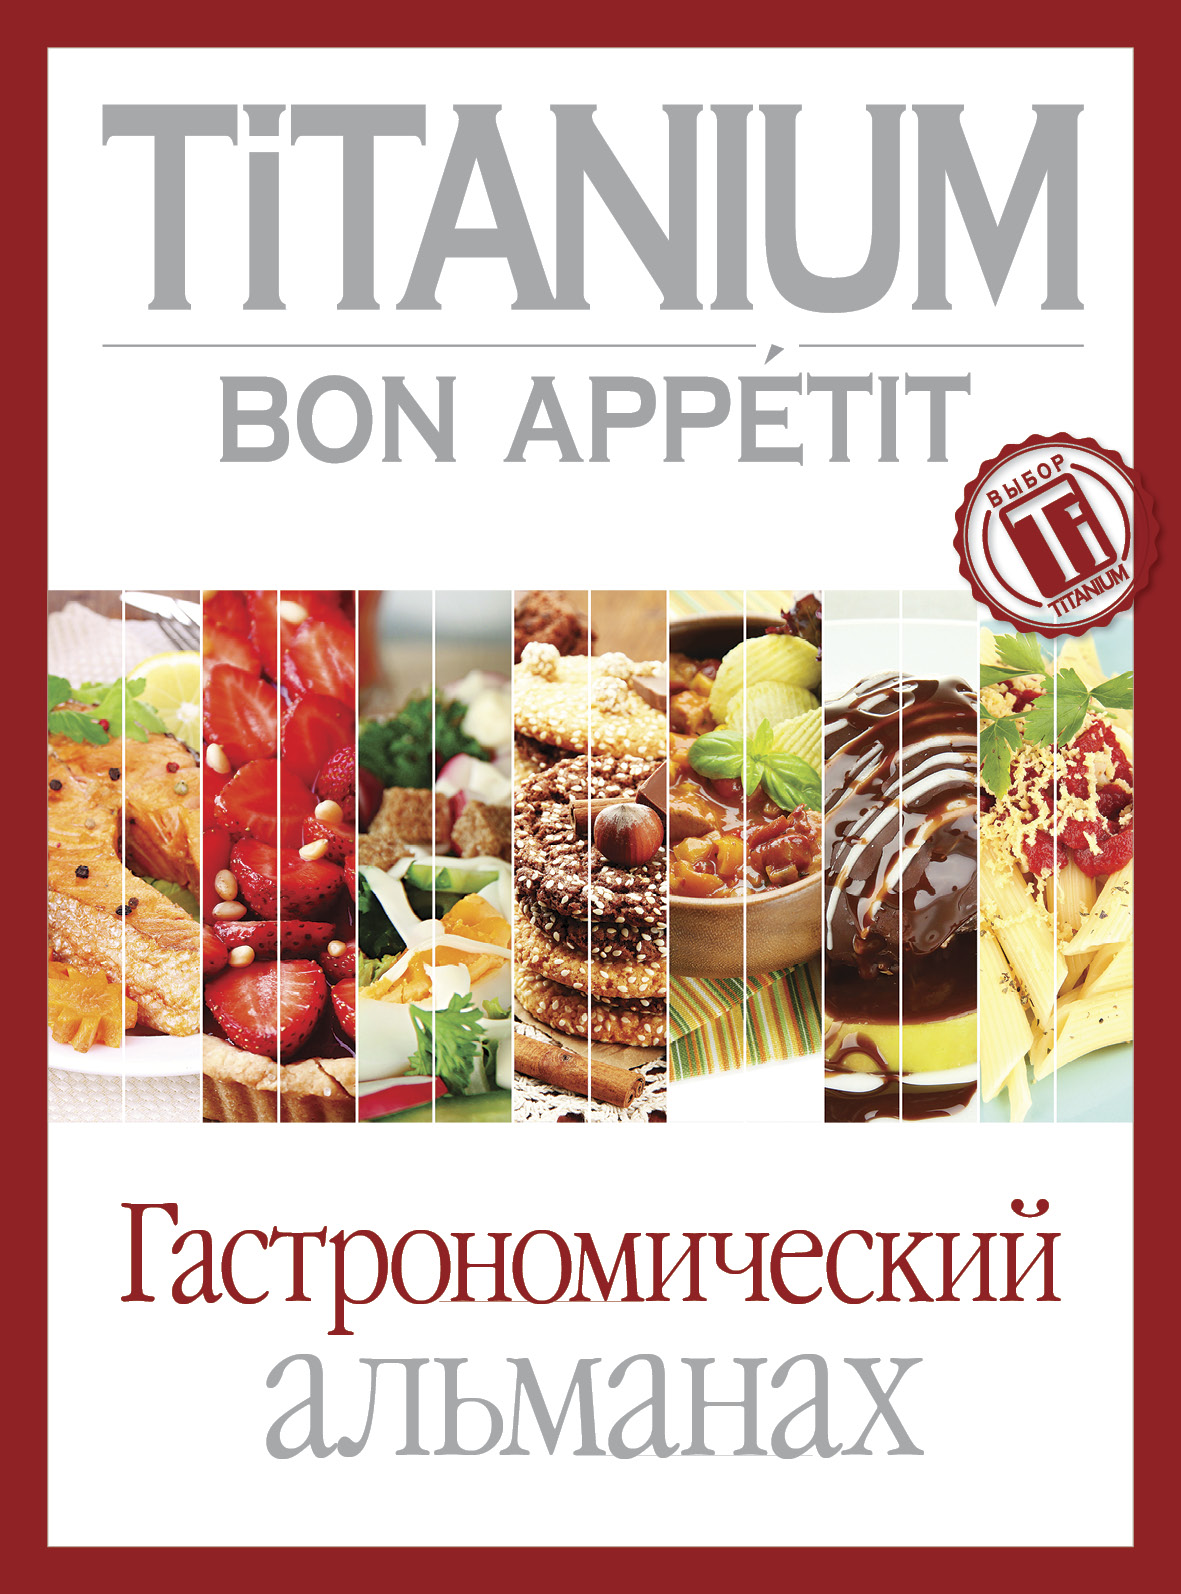 Titanium_cover_guide_42